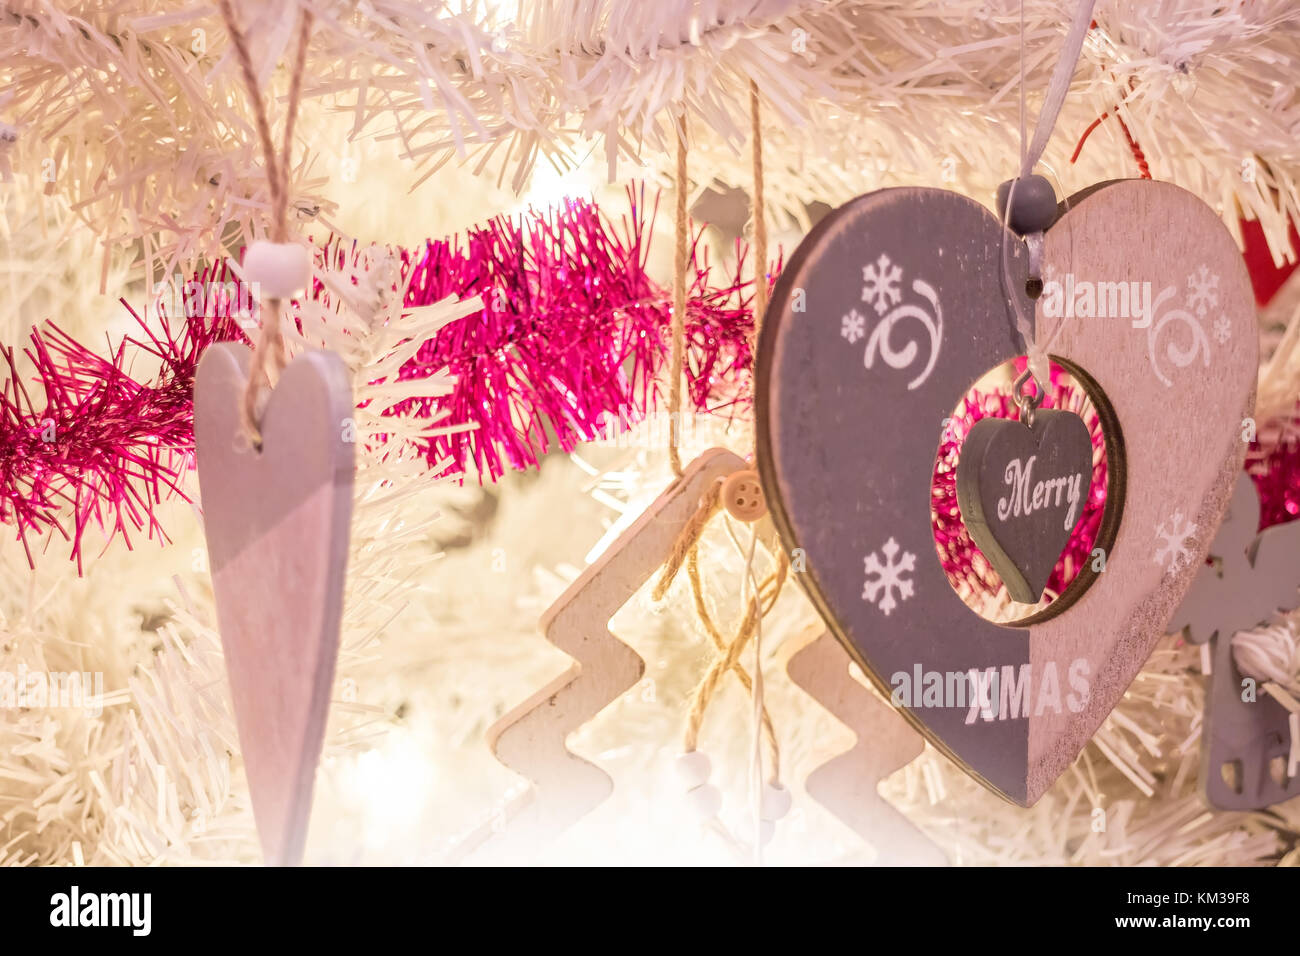 Baubles Border Stock Photos & Baubles Border Stock Images ...